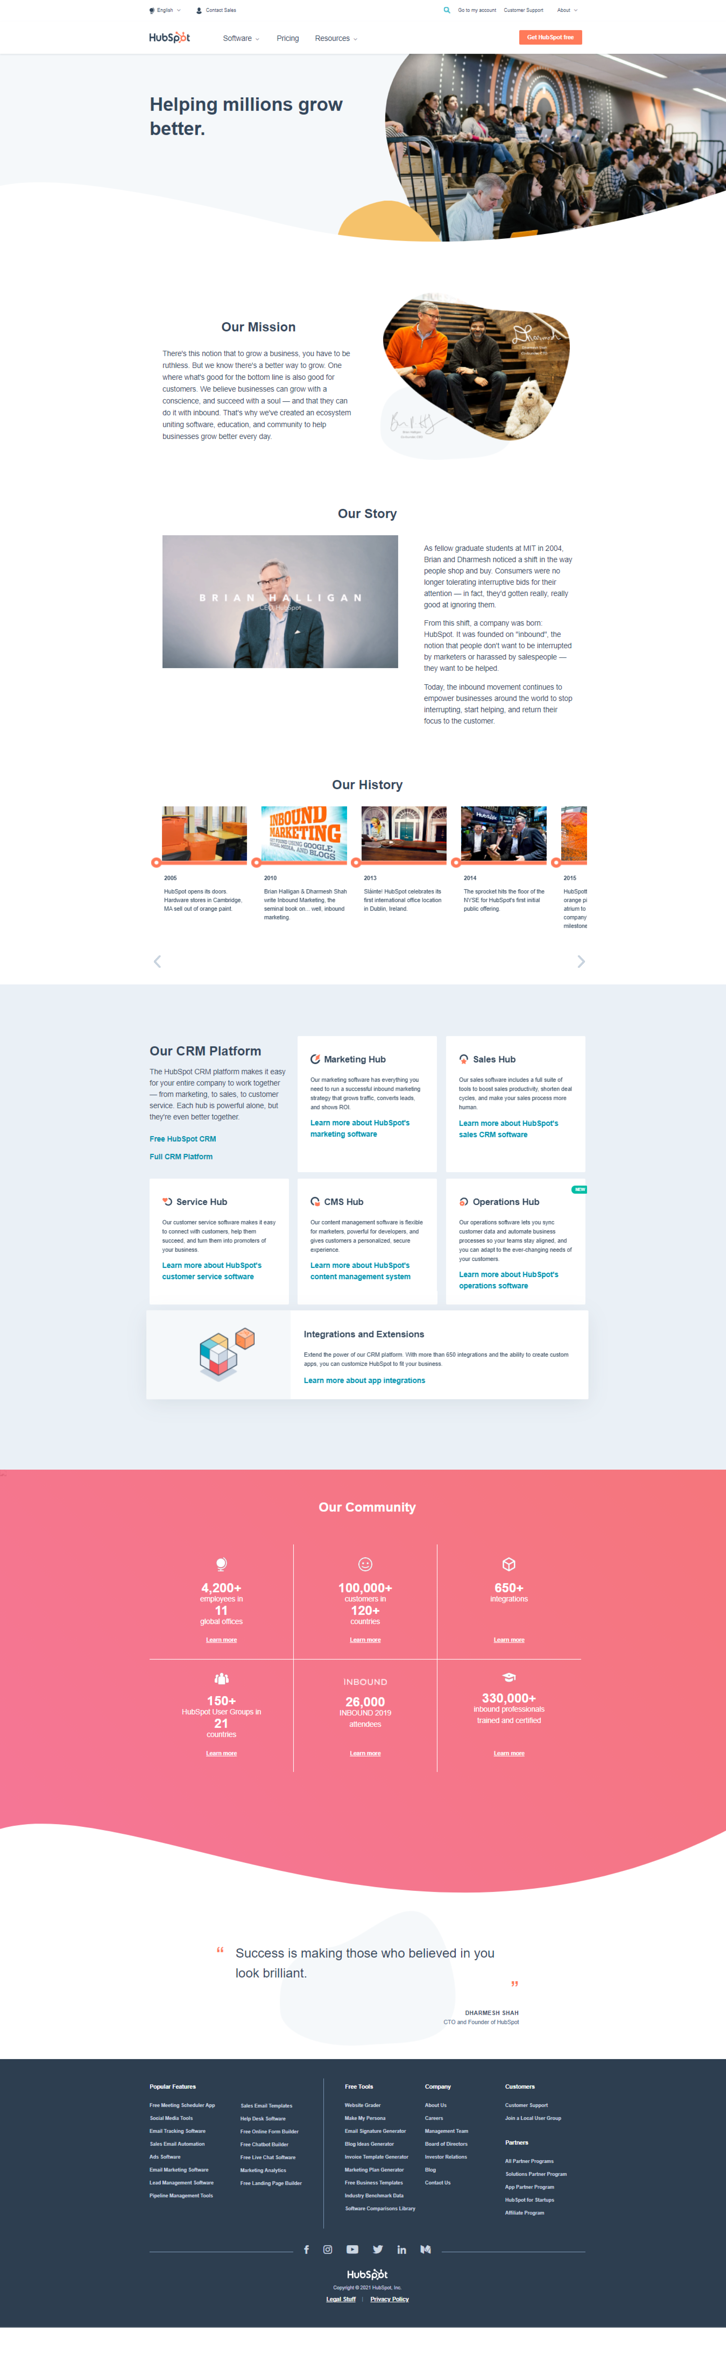 hubspot about us page